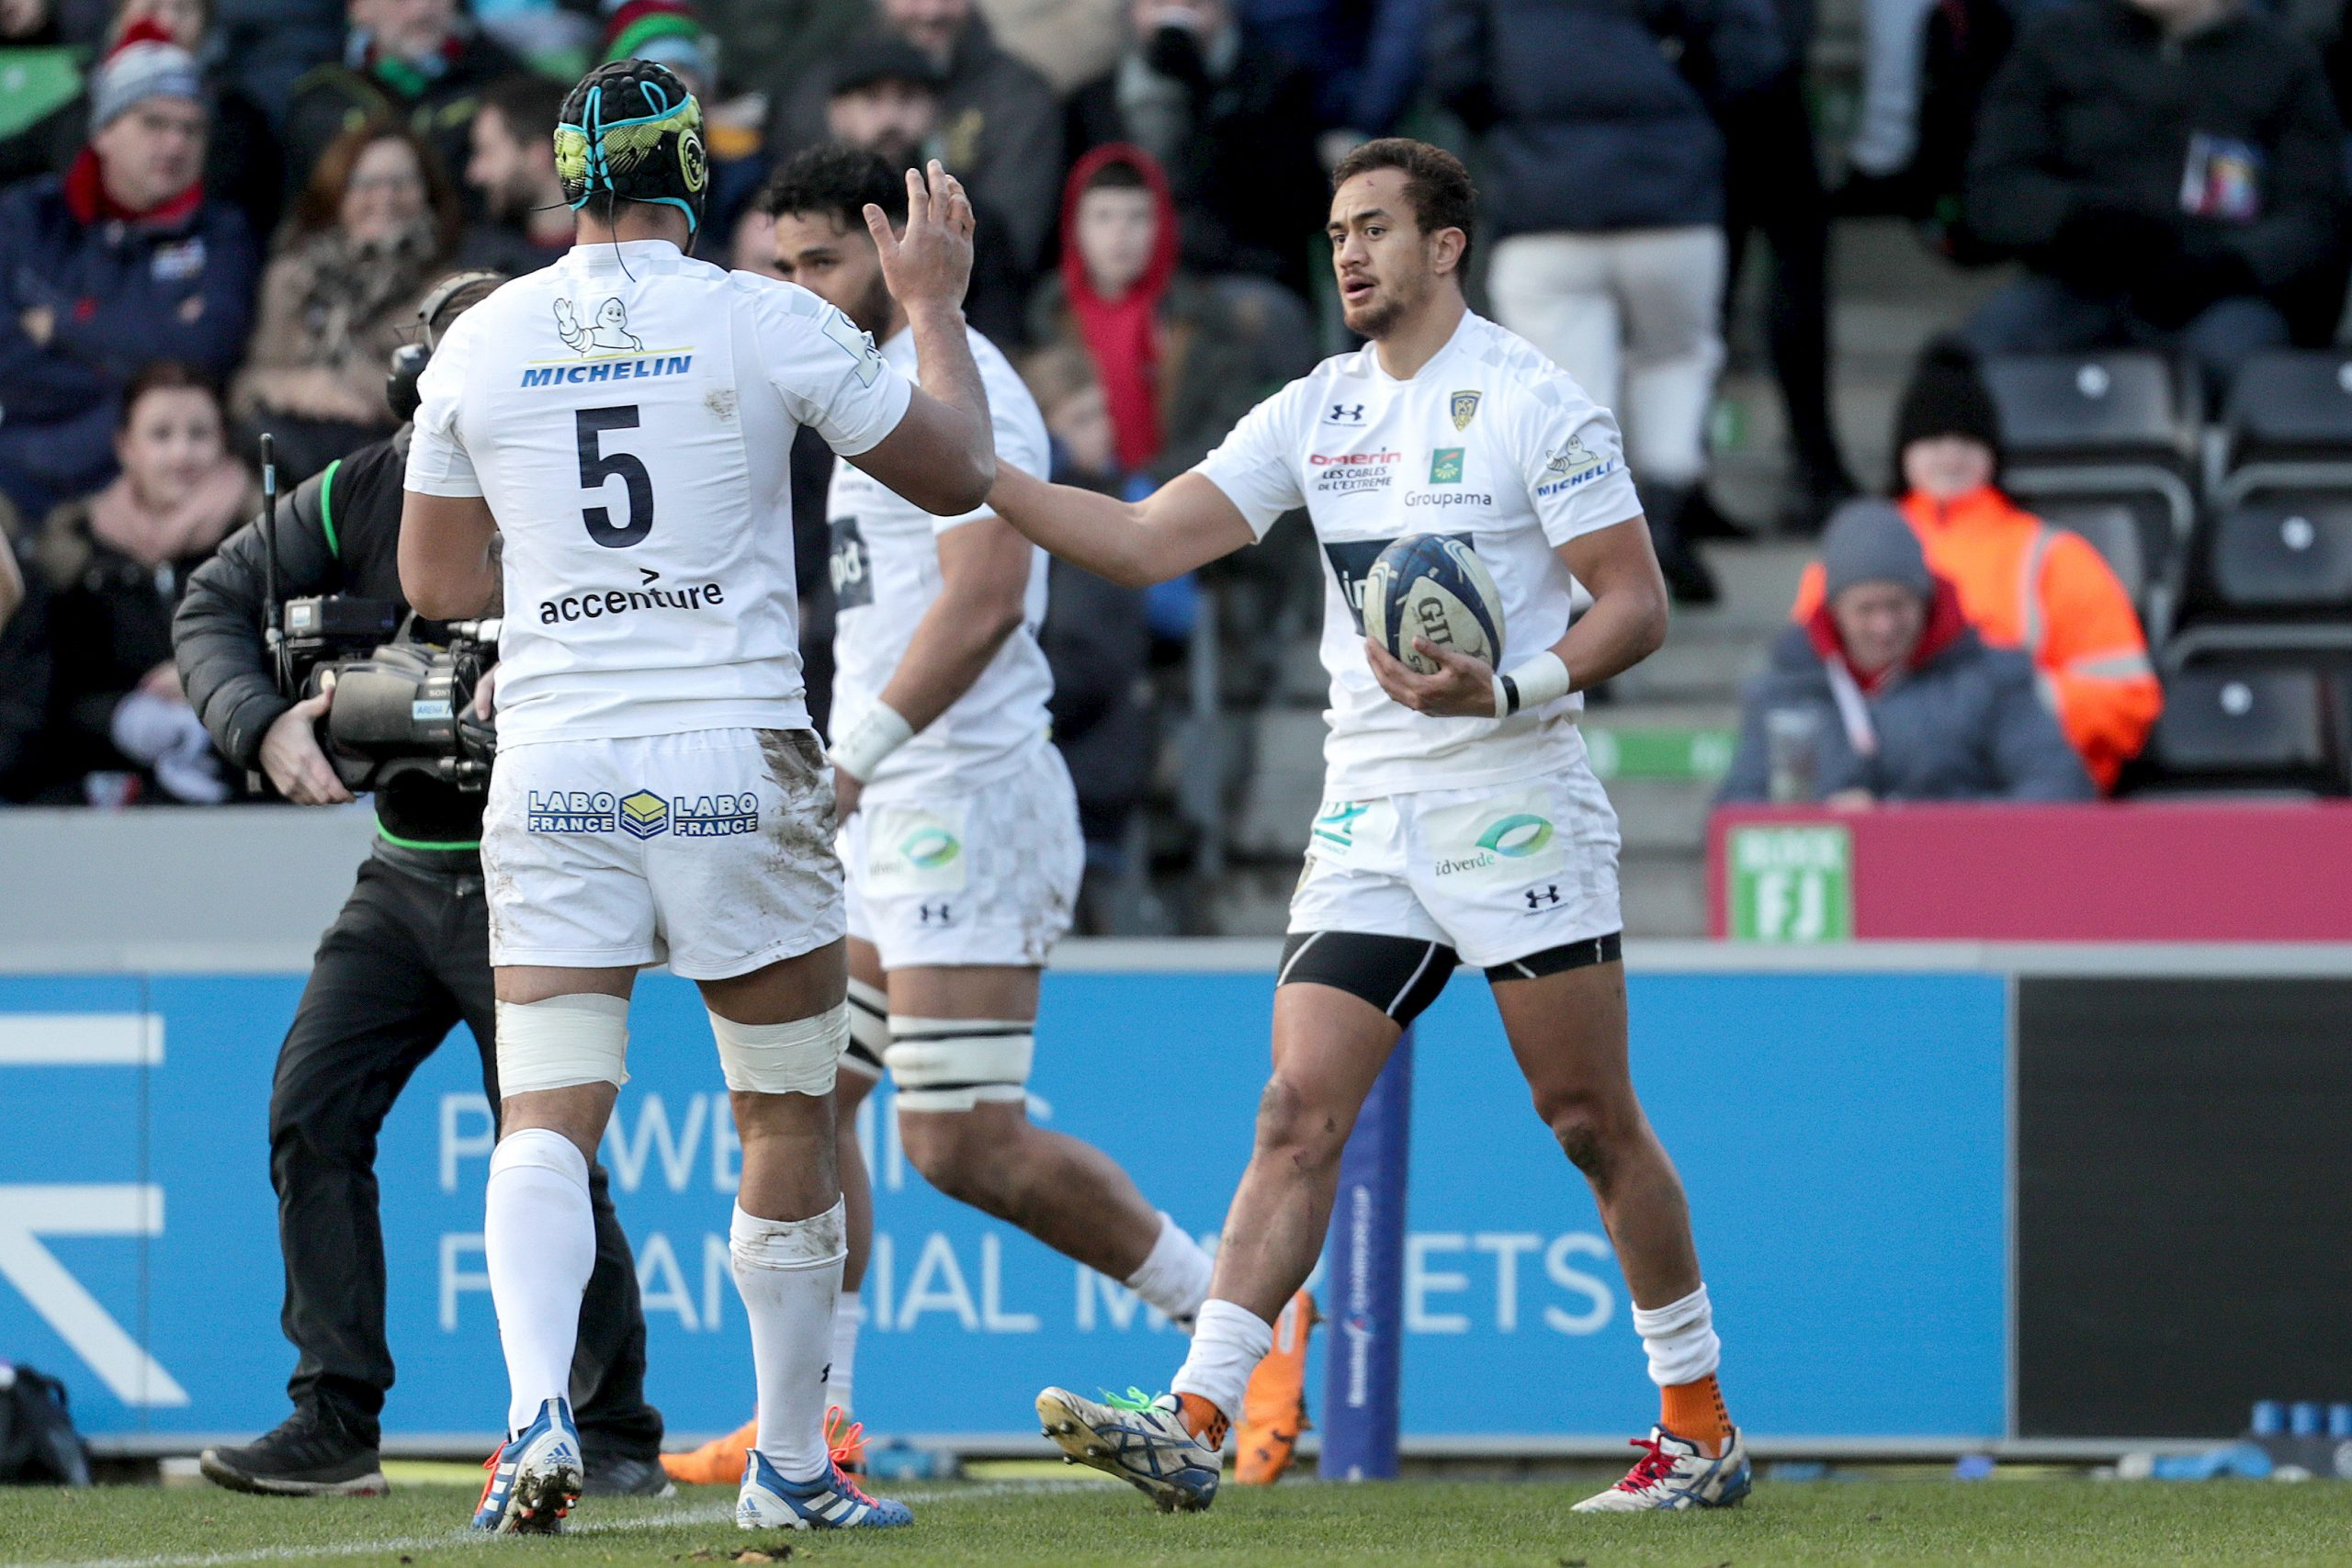 Highlights: Harlequins v ASM Clermont Auvergne